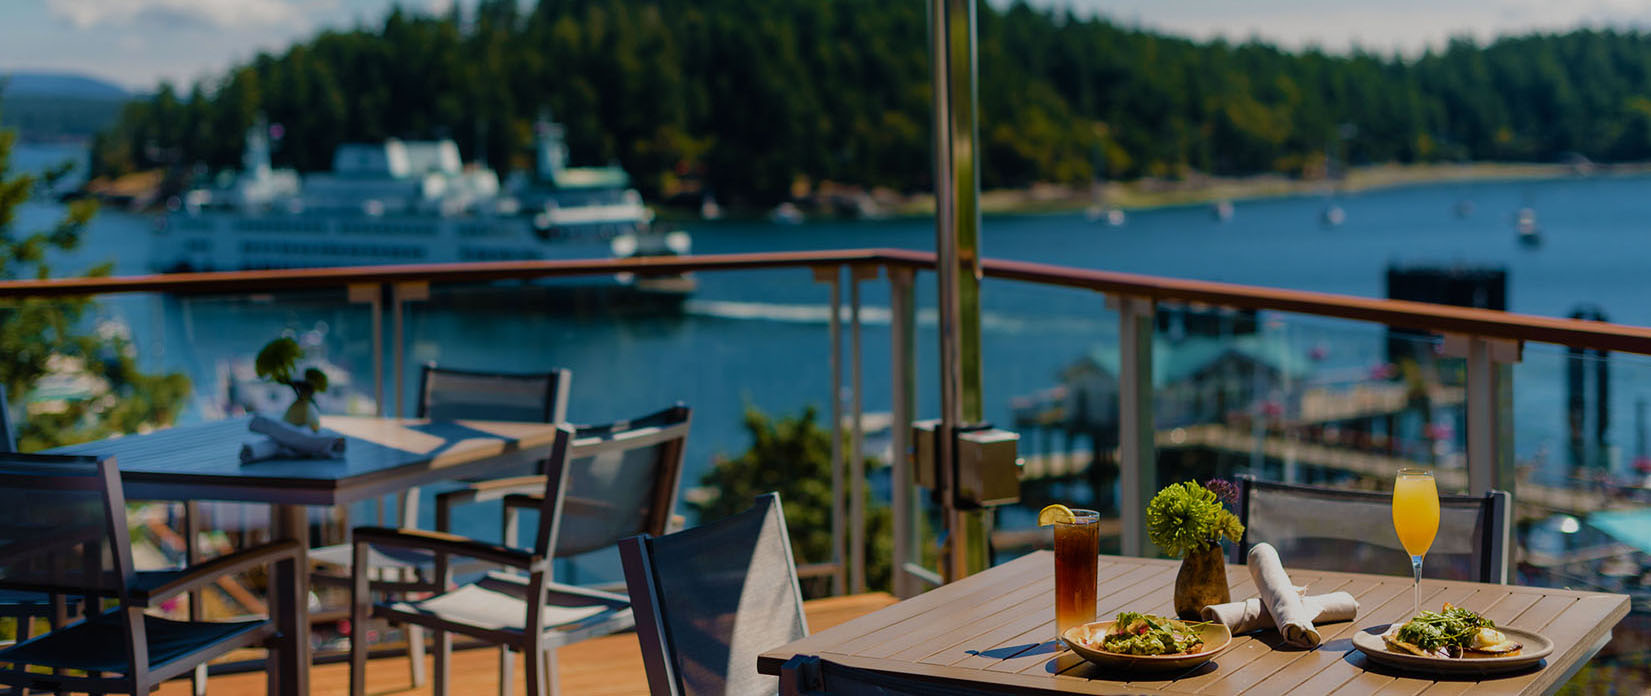 Outdoor dining with harbor view